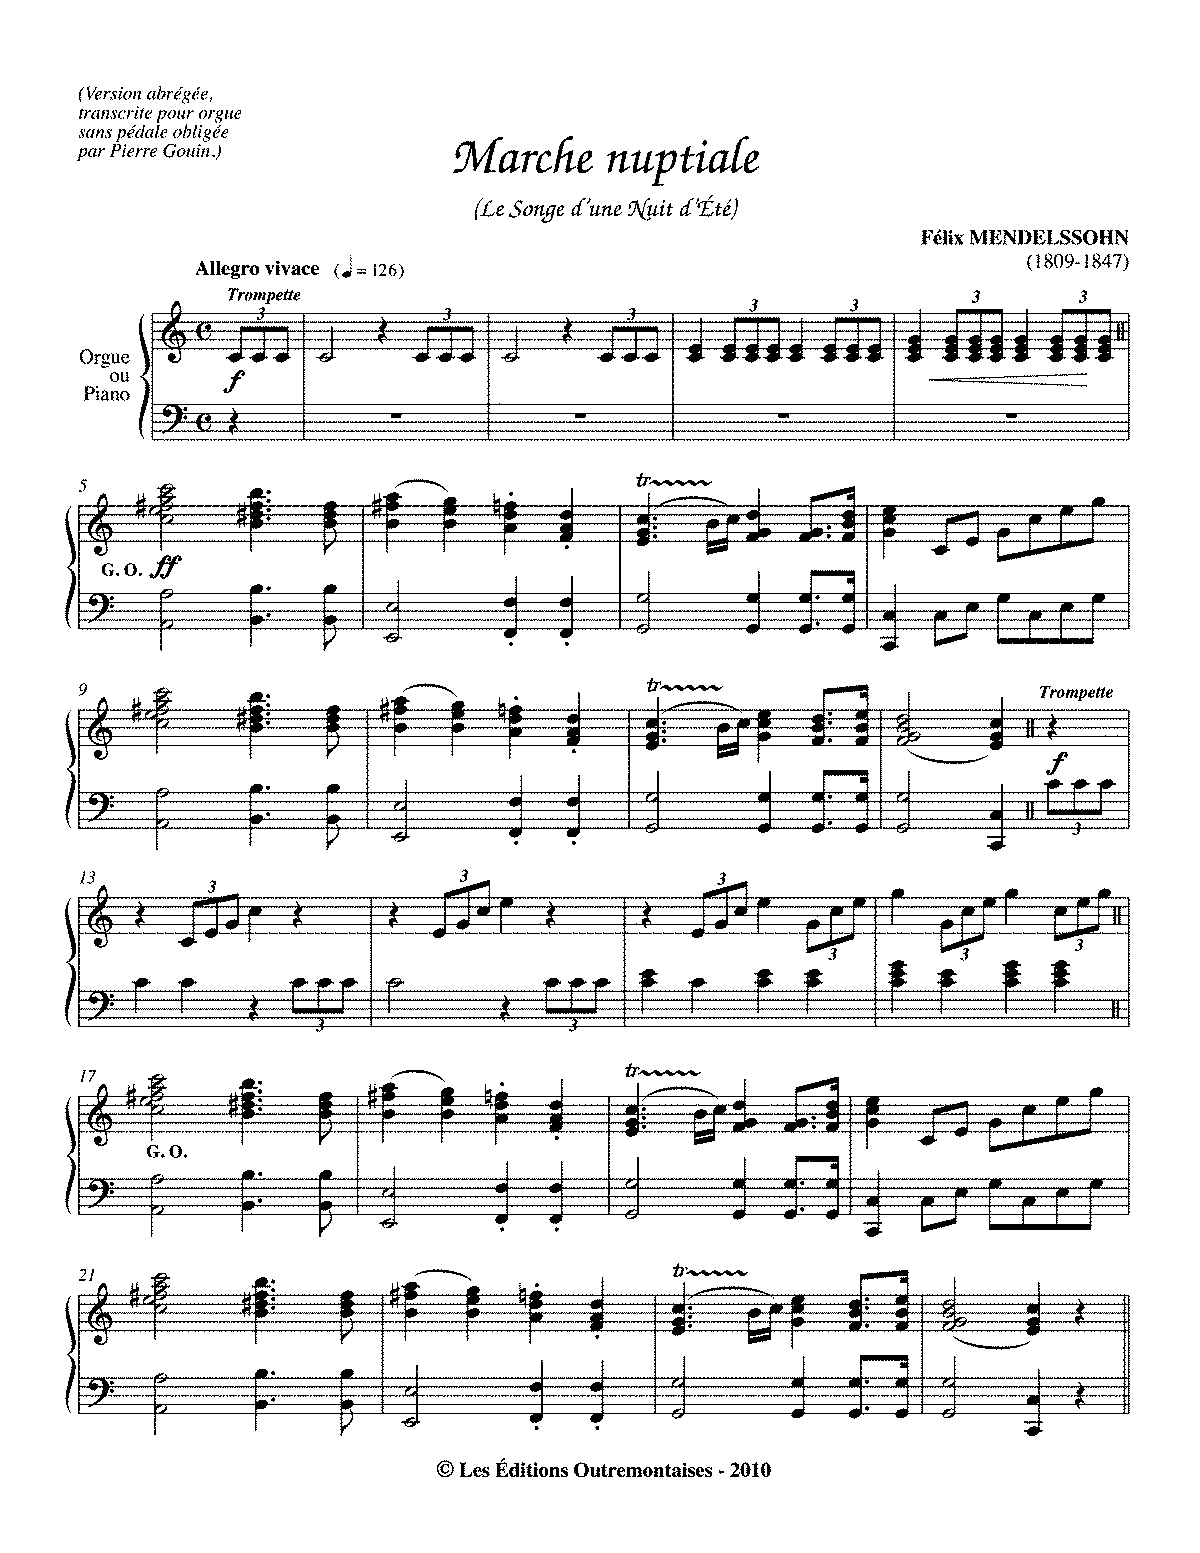 WIMA.4e74-Mendelssohn Wedding March.pdf